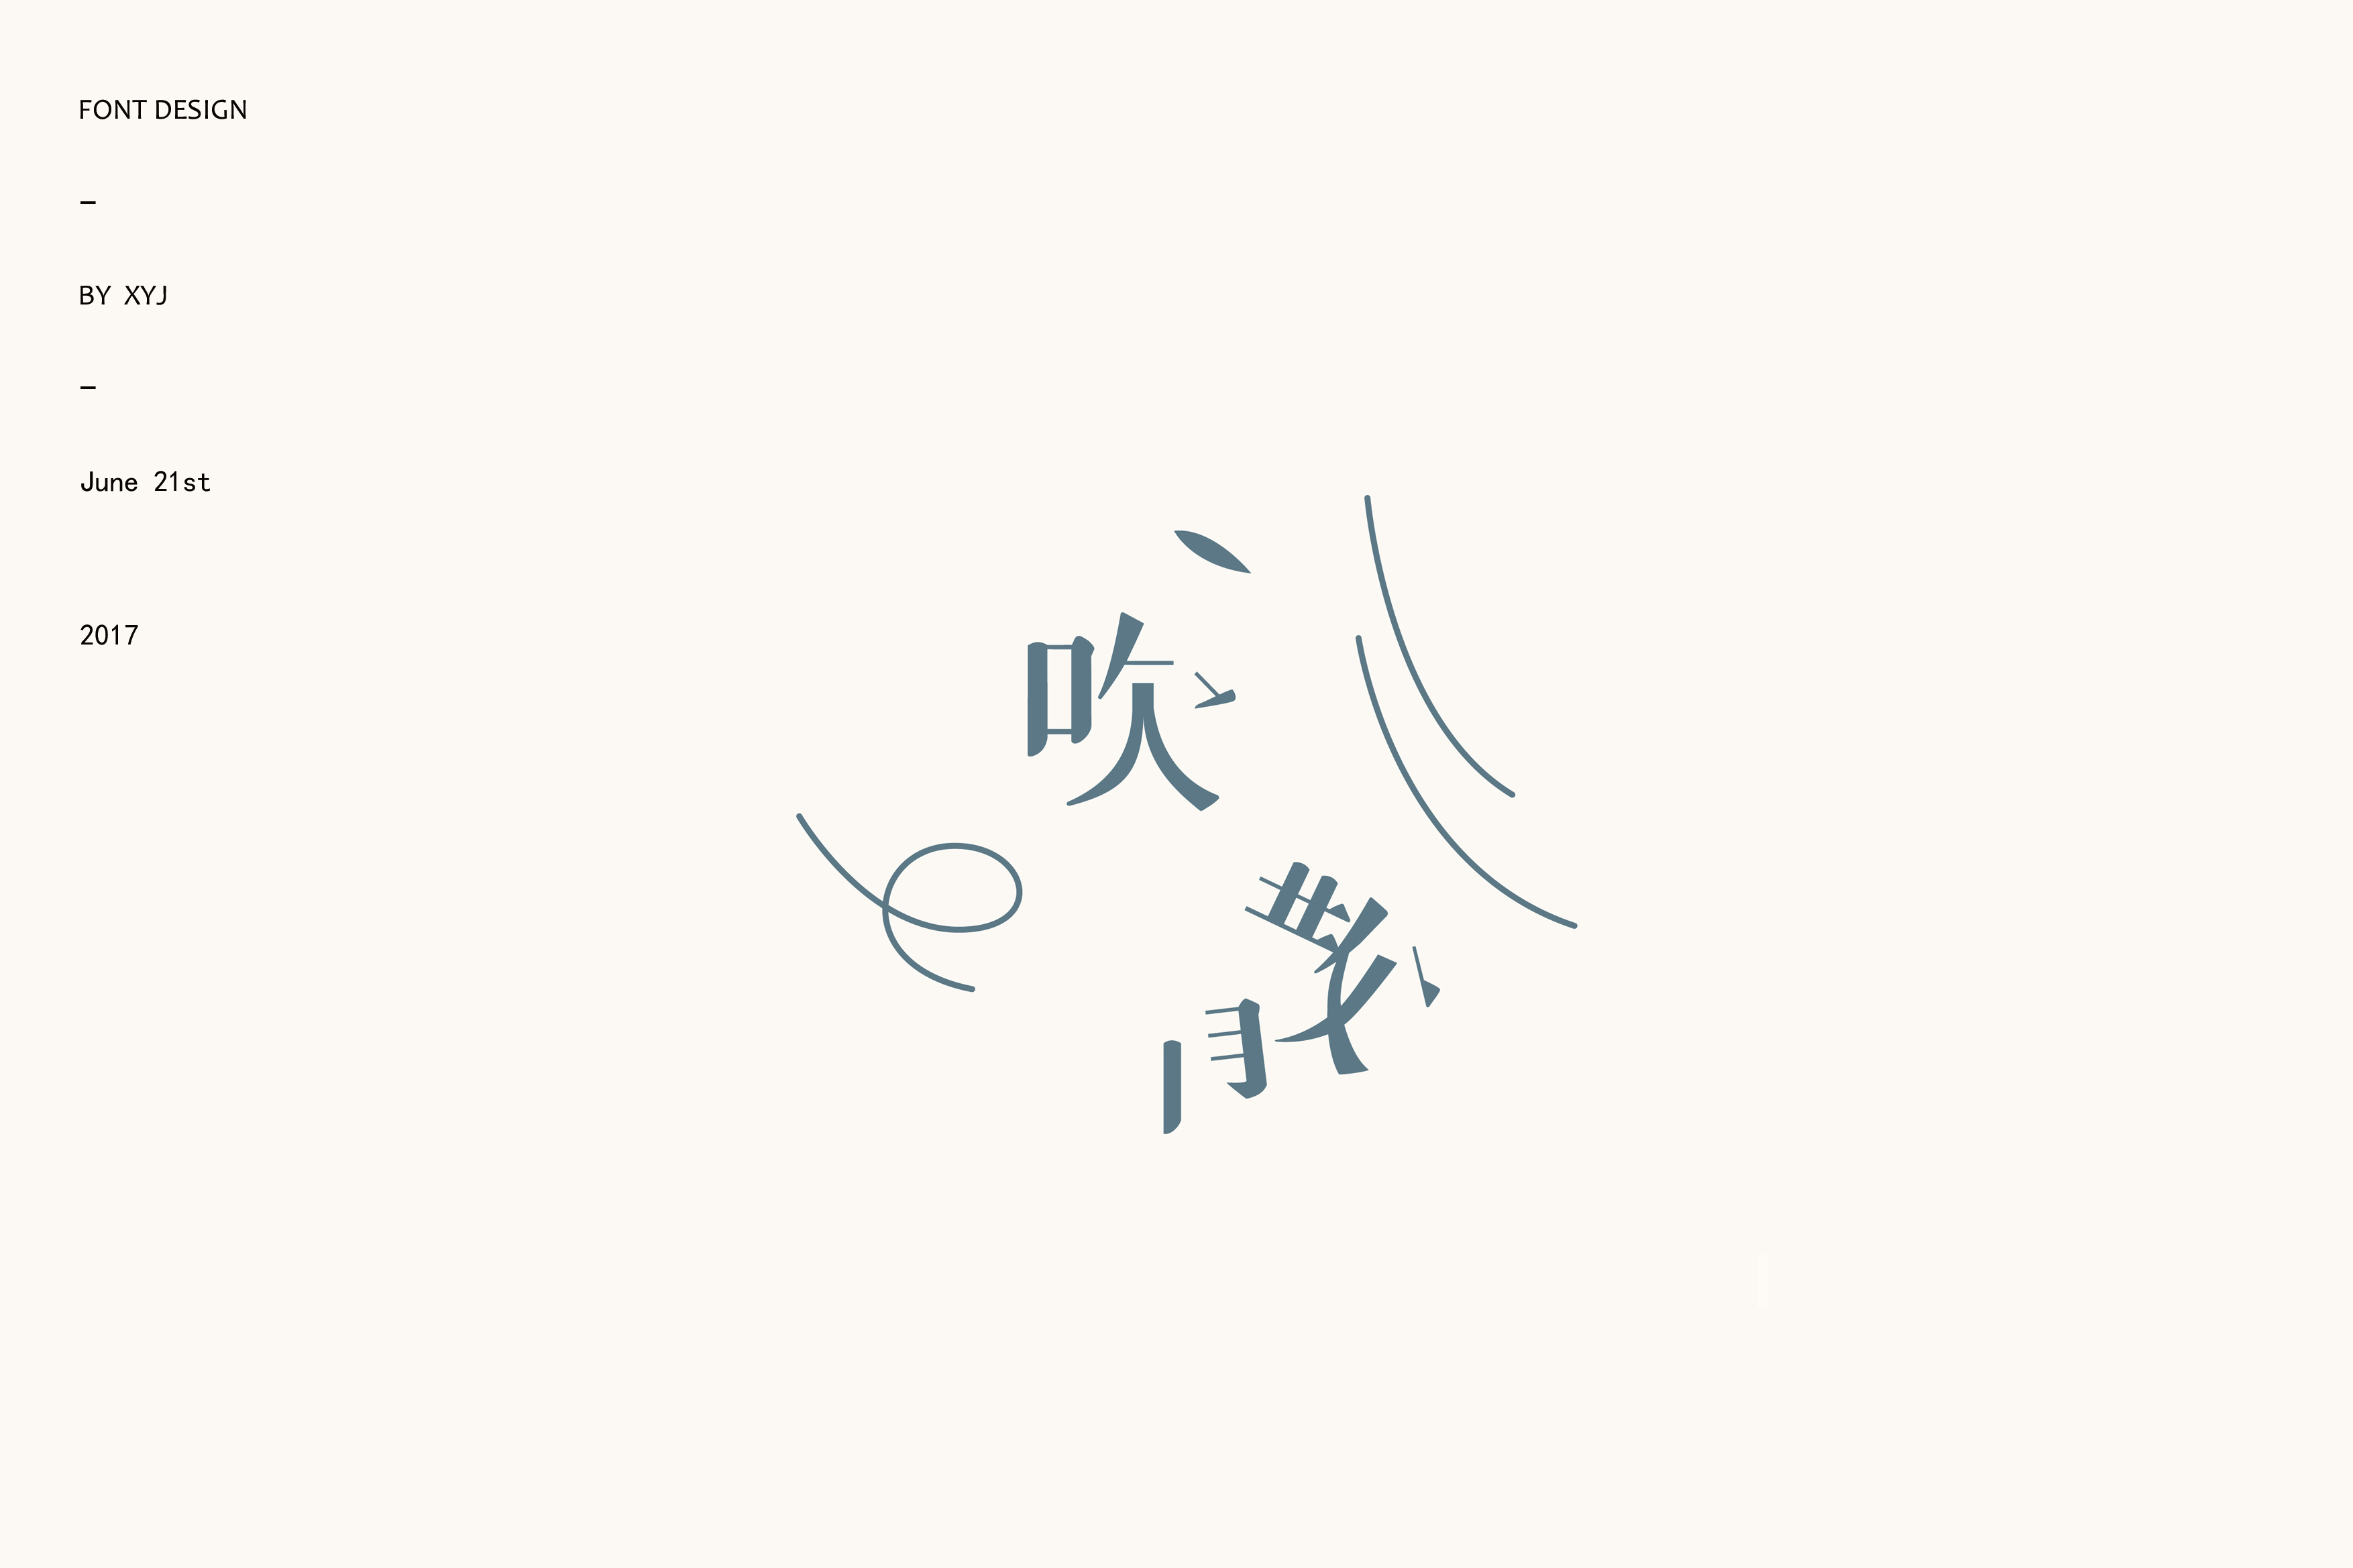 chinesefontdesign.com 2017 07 11 11 31 23 034027 13P Chinese font style design march